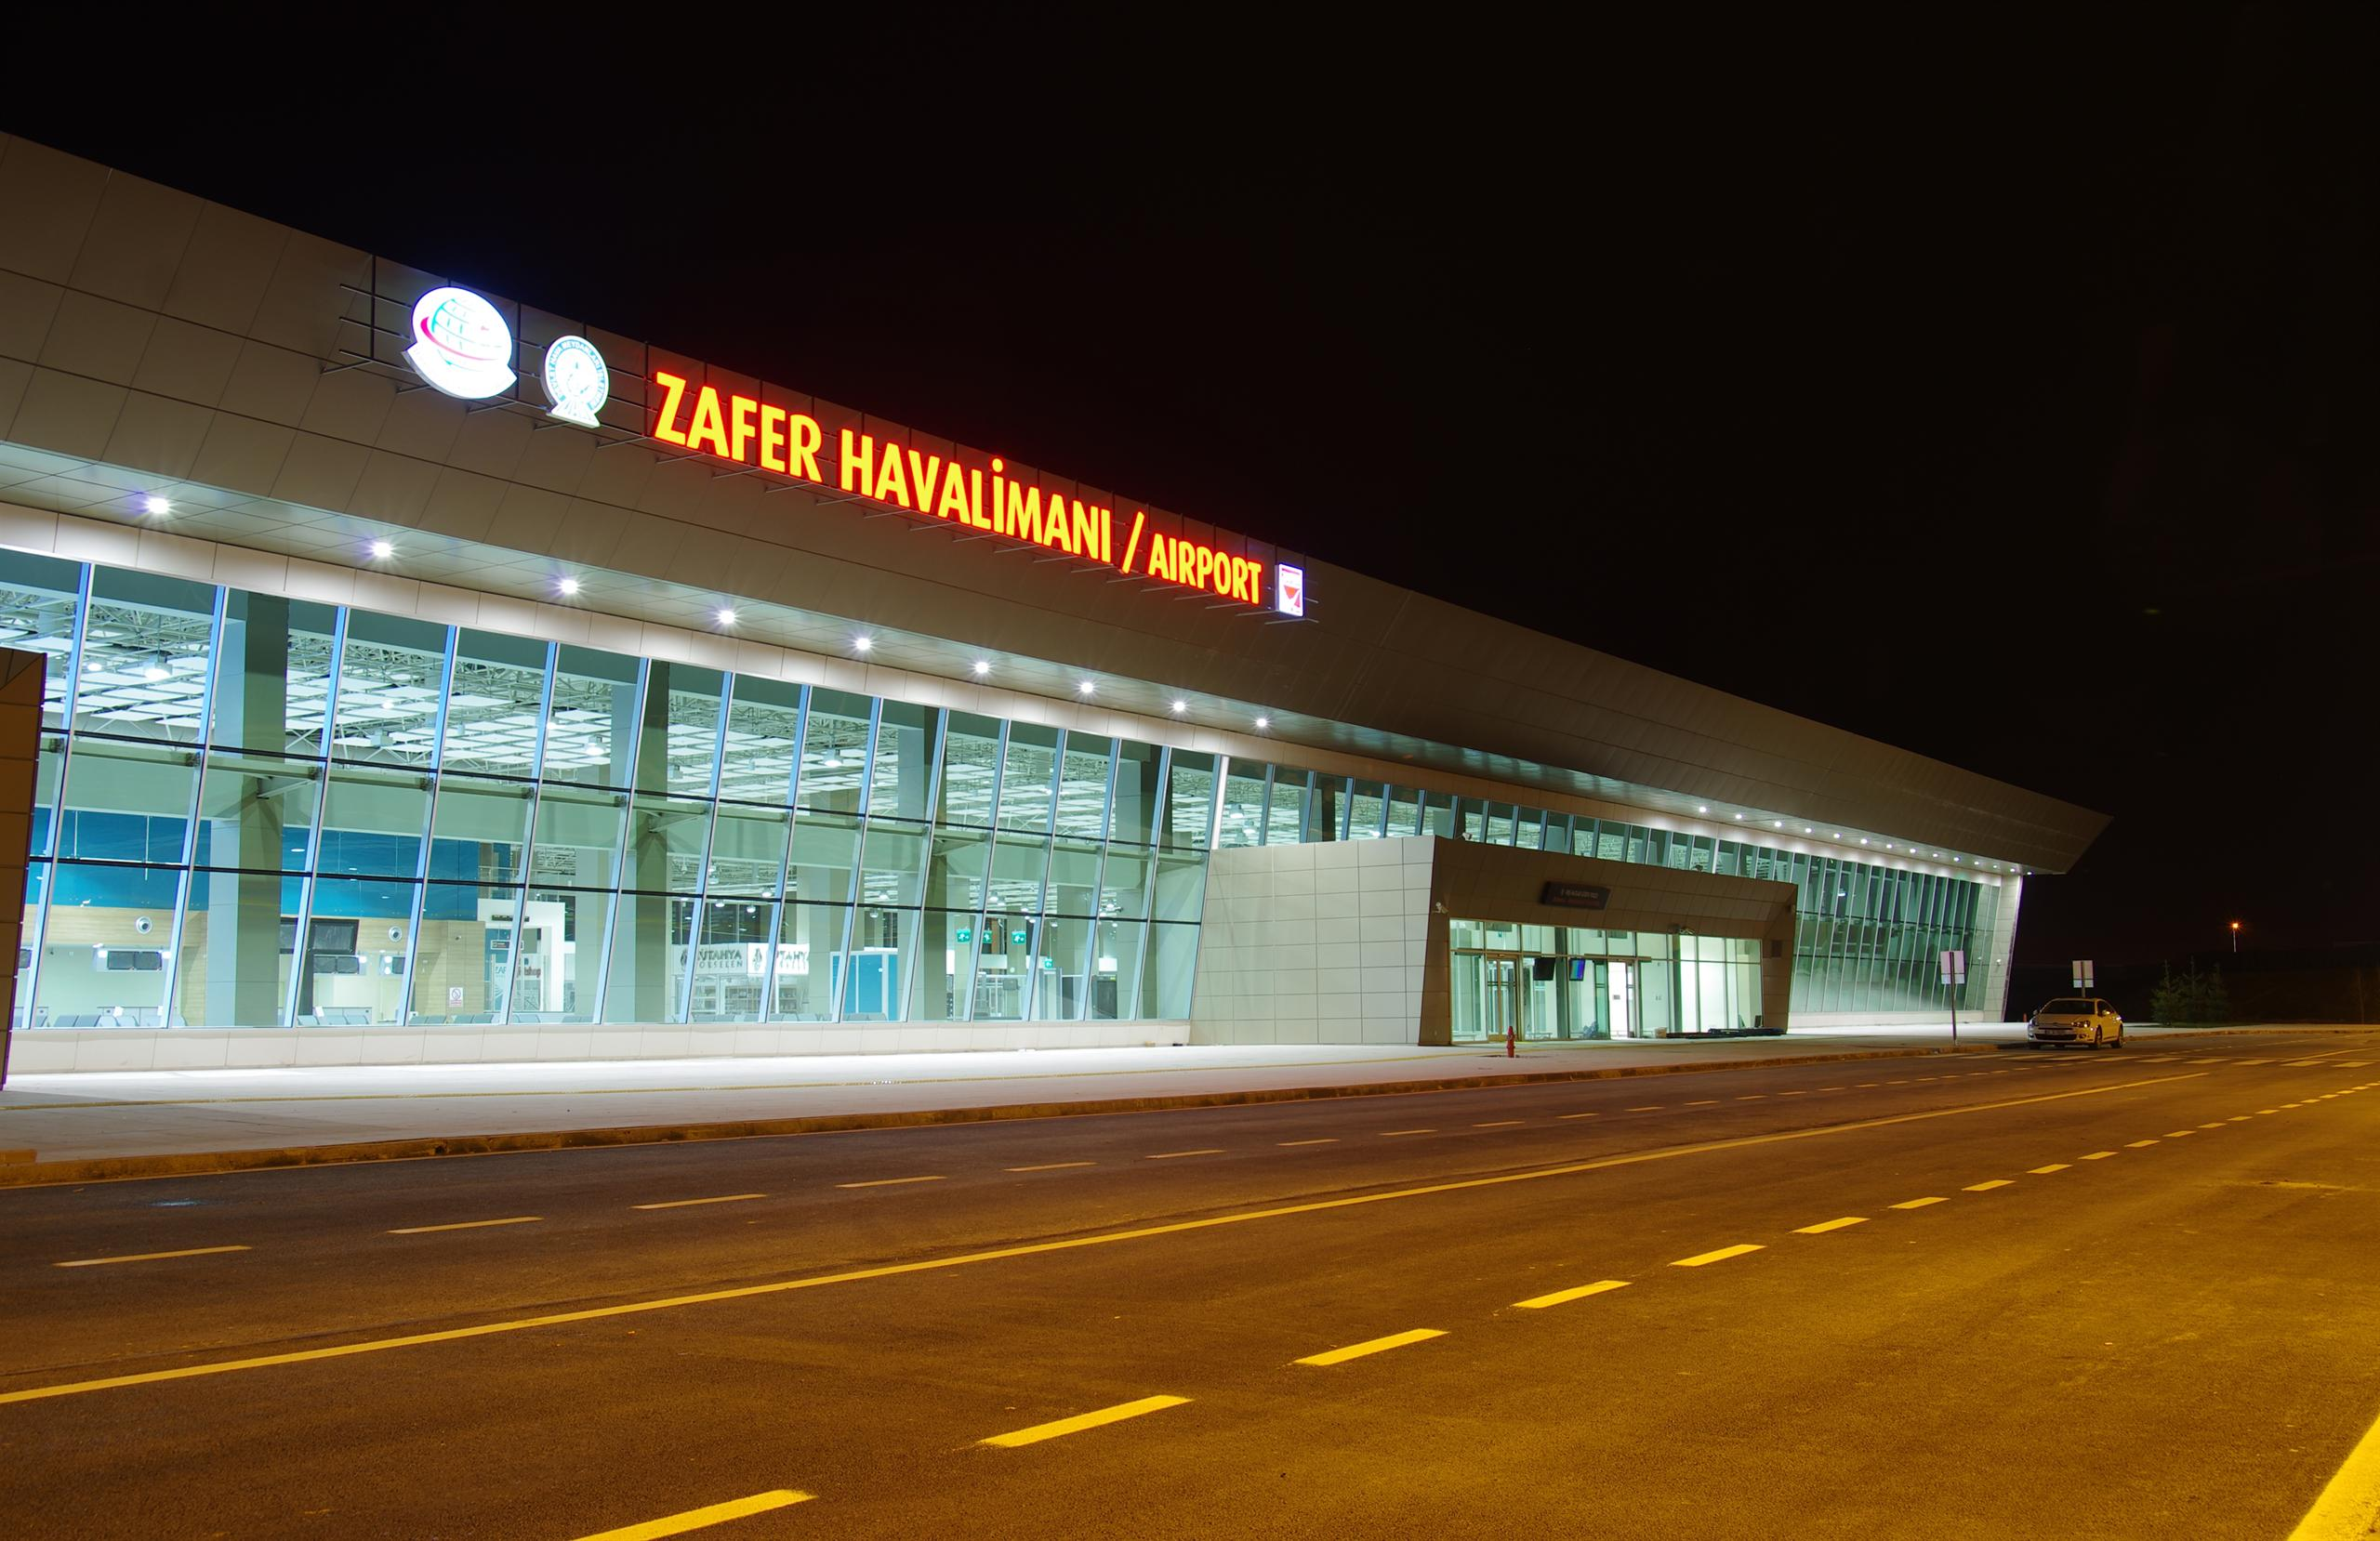 External view of airport terminal building